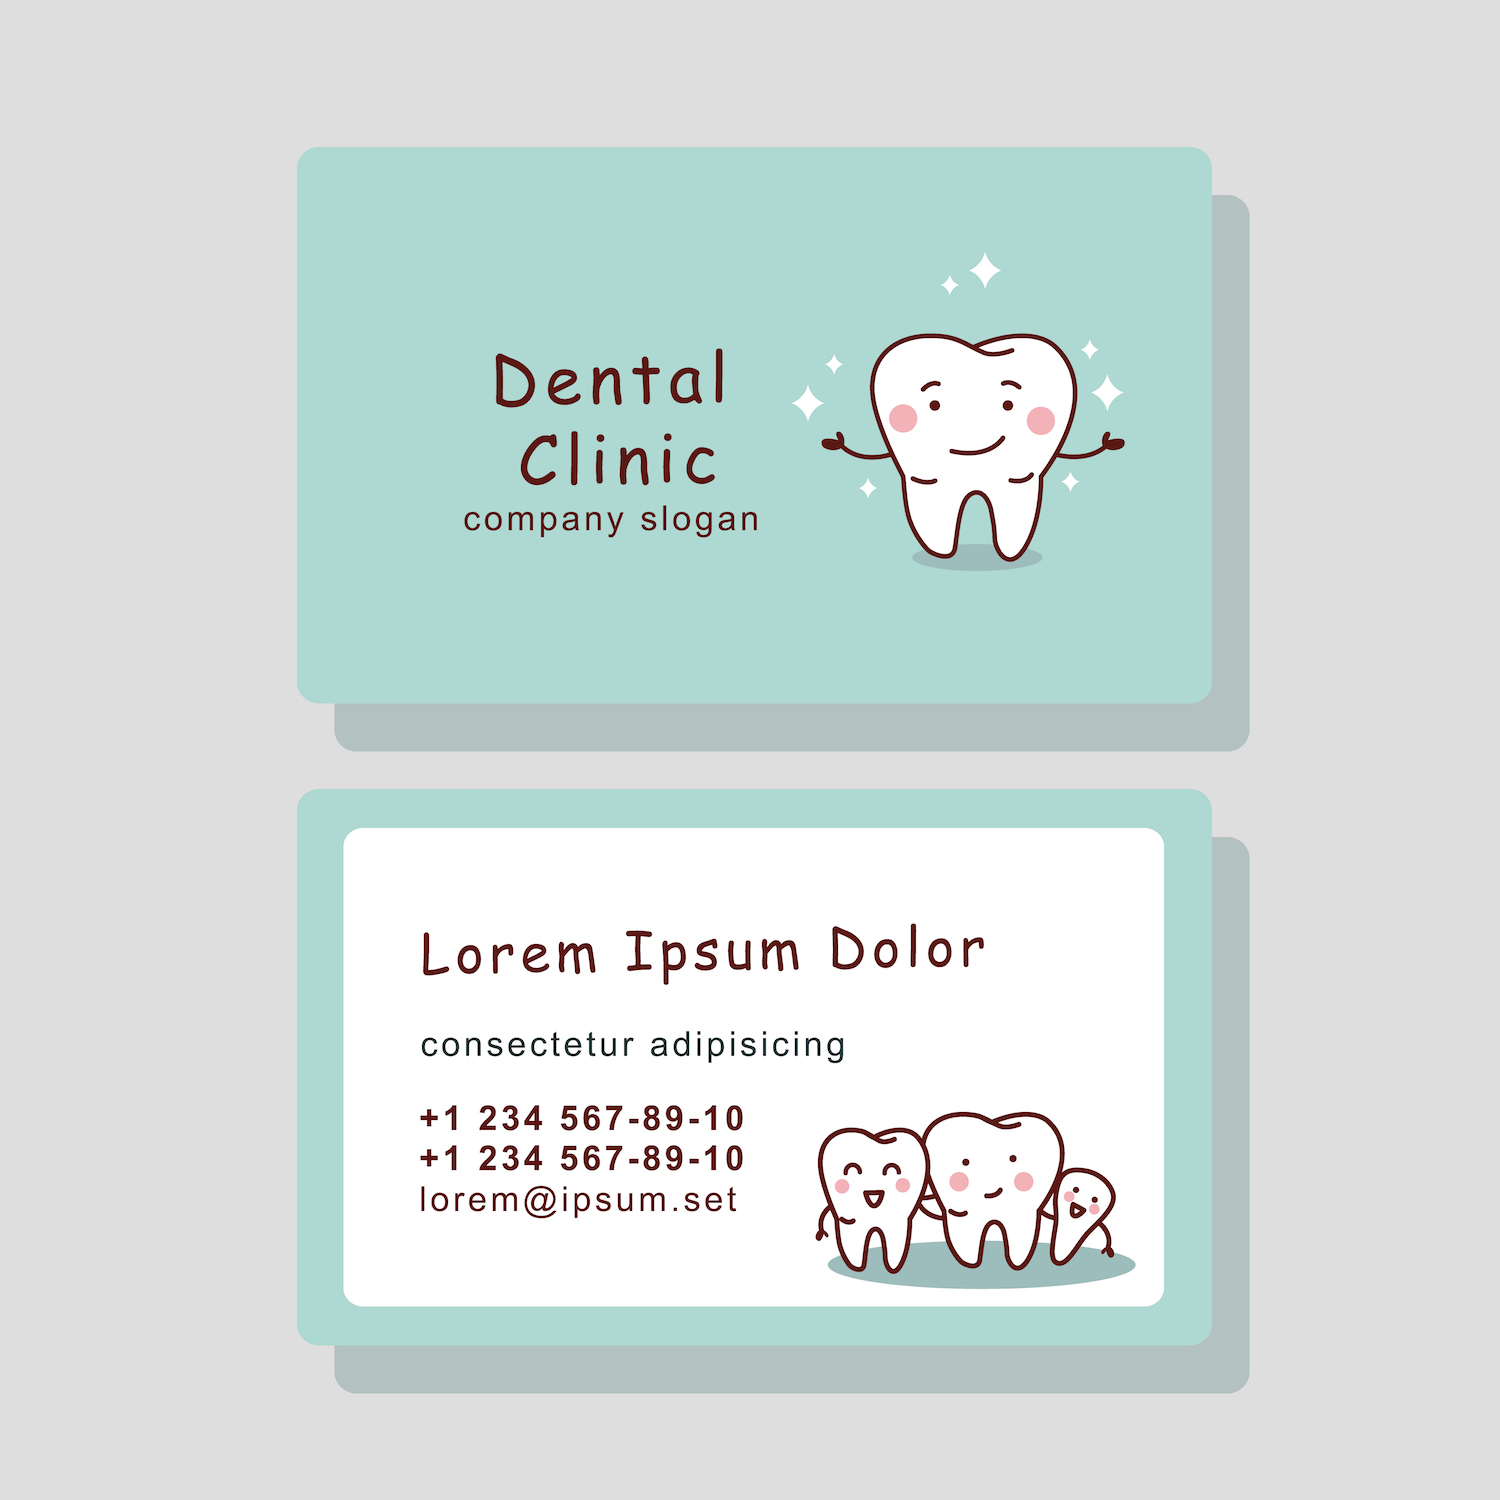 Dental Business Card Design | brandinglosangeles.com